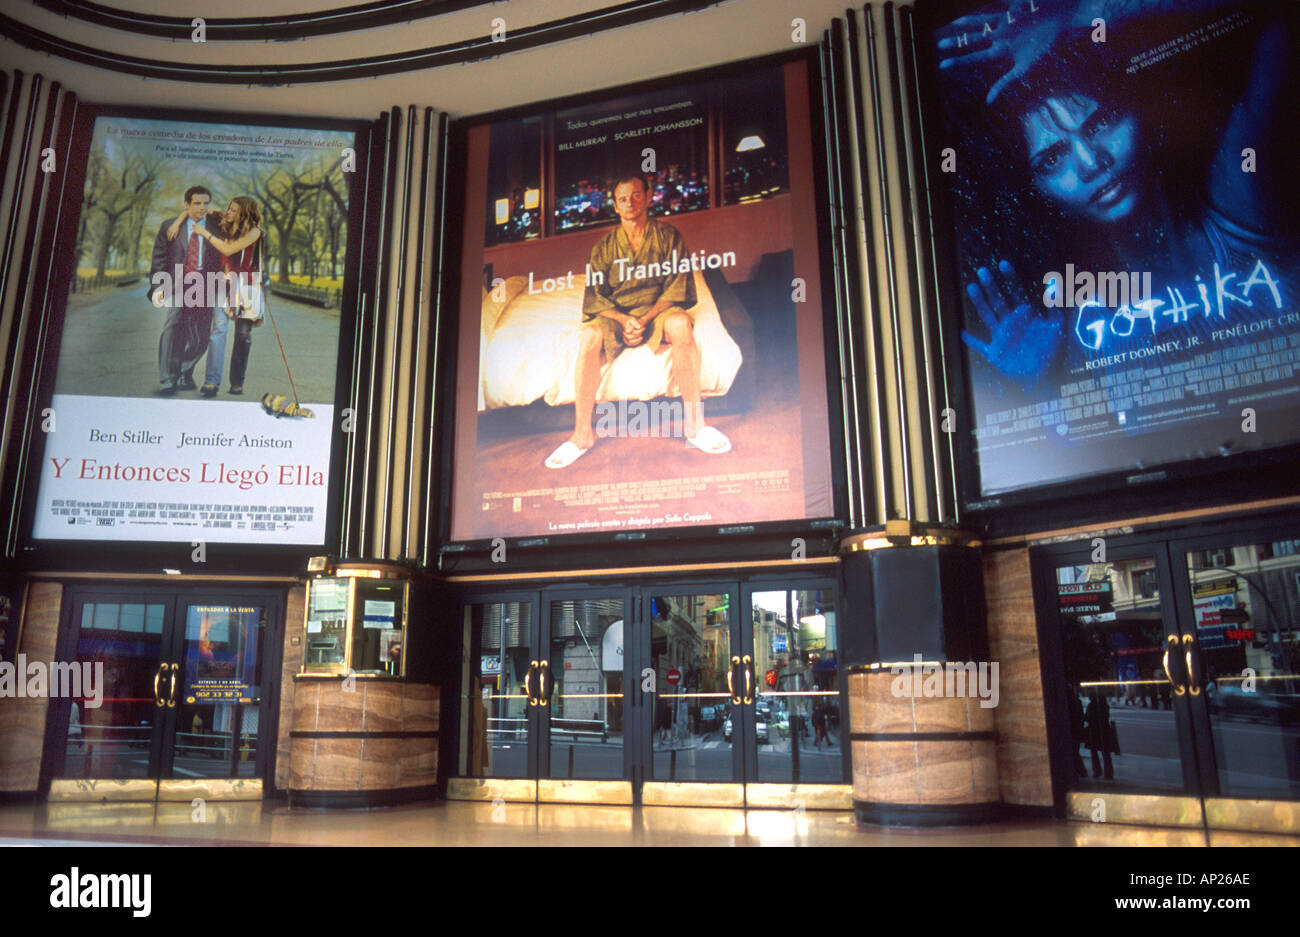 spanish language movie posters at a theater on gran via in